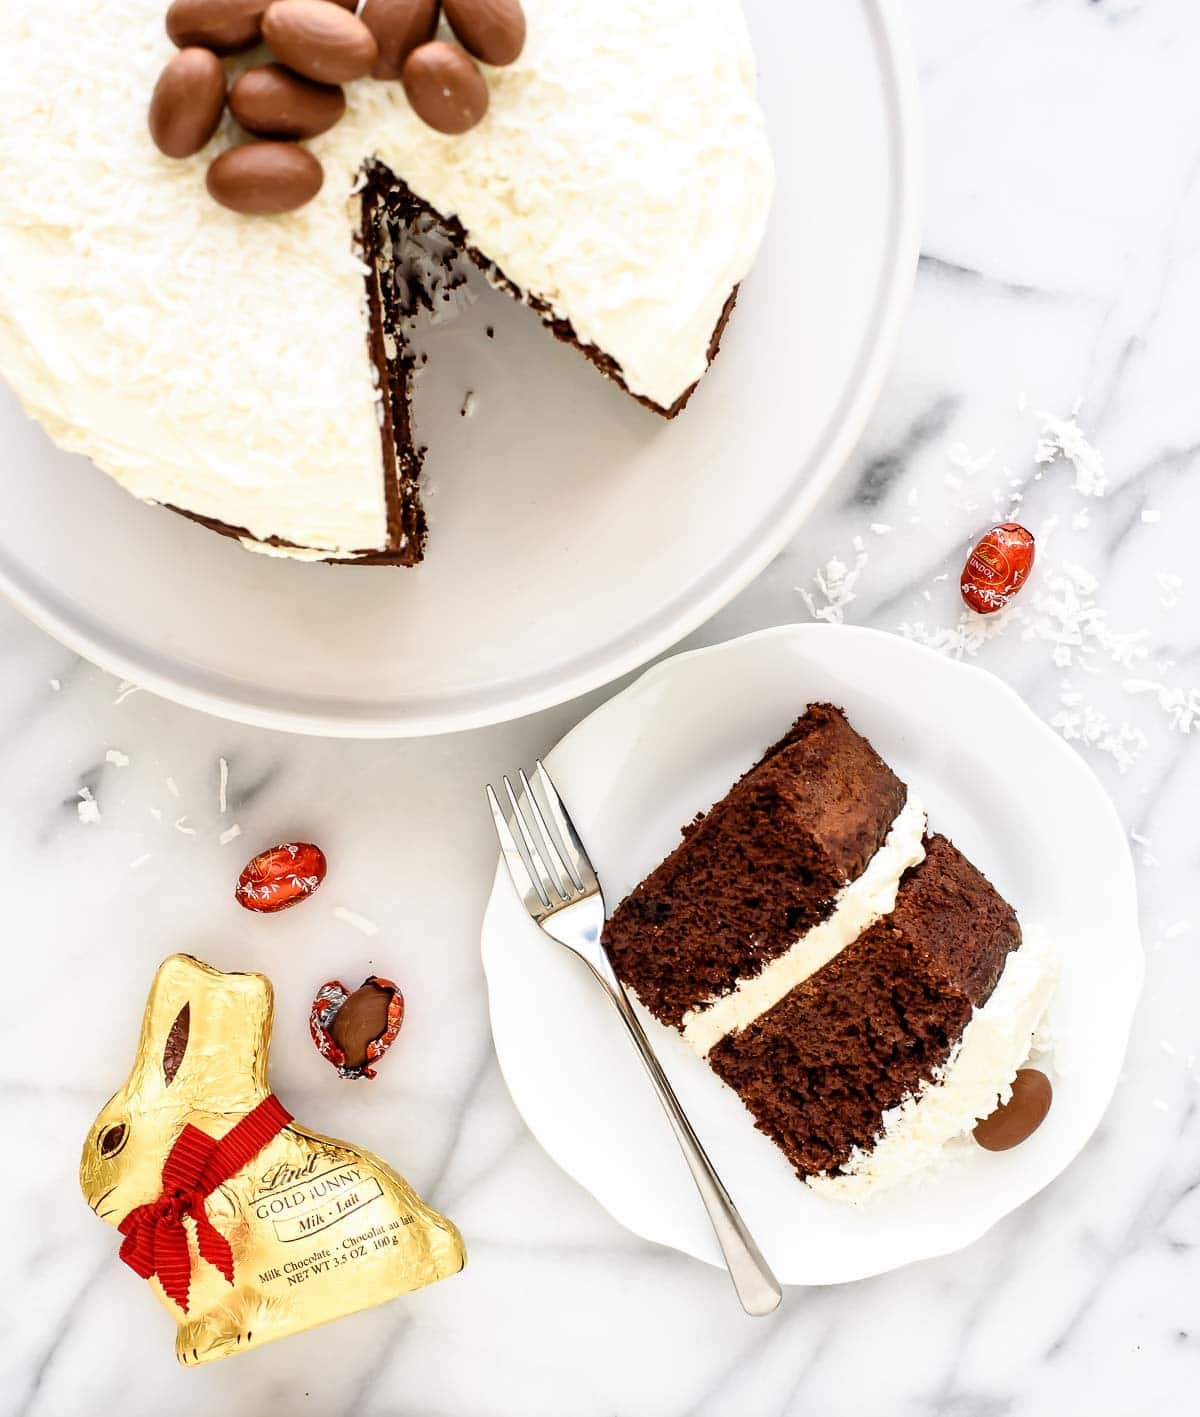 The BEST homemade chocolate cake you will ever bake: Fudgy Triple Chocolate Cake with White Chocolate Buttercream @wellplated